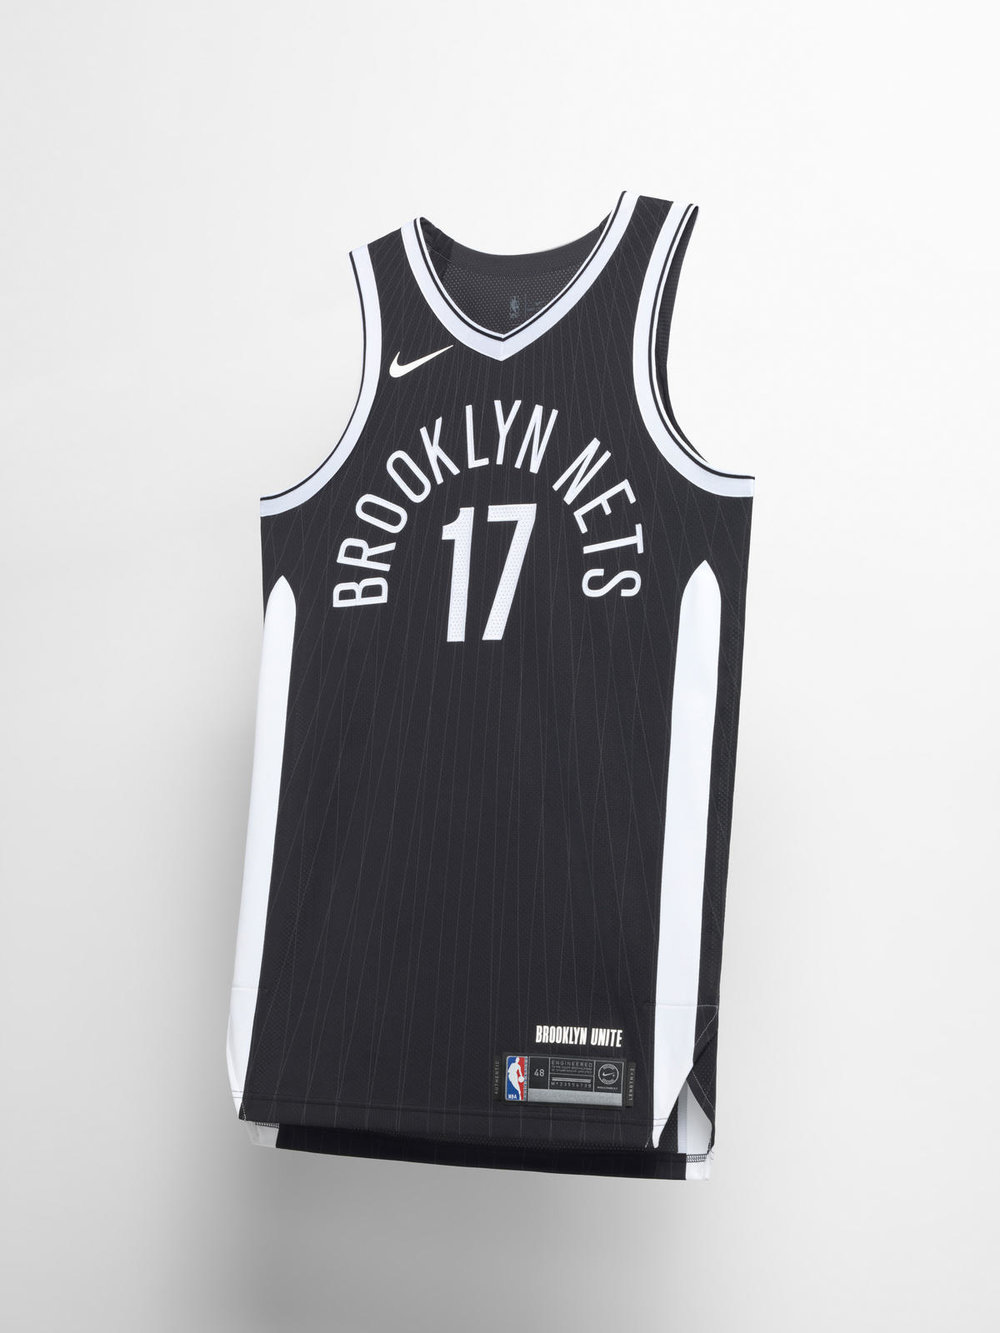 Nike_NBA_City_Edition_Uniform_Brooklyn_Nets_0182_native_1600.jpeg